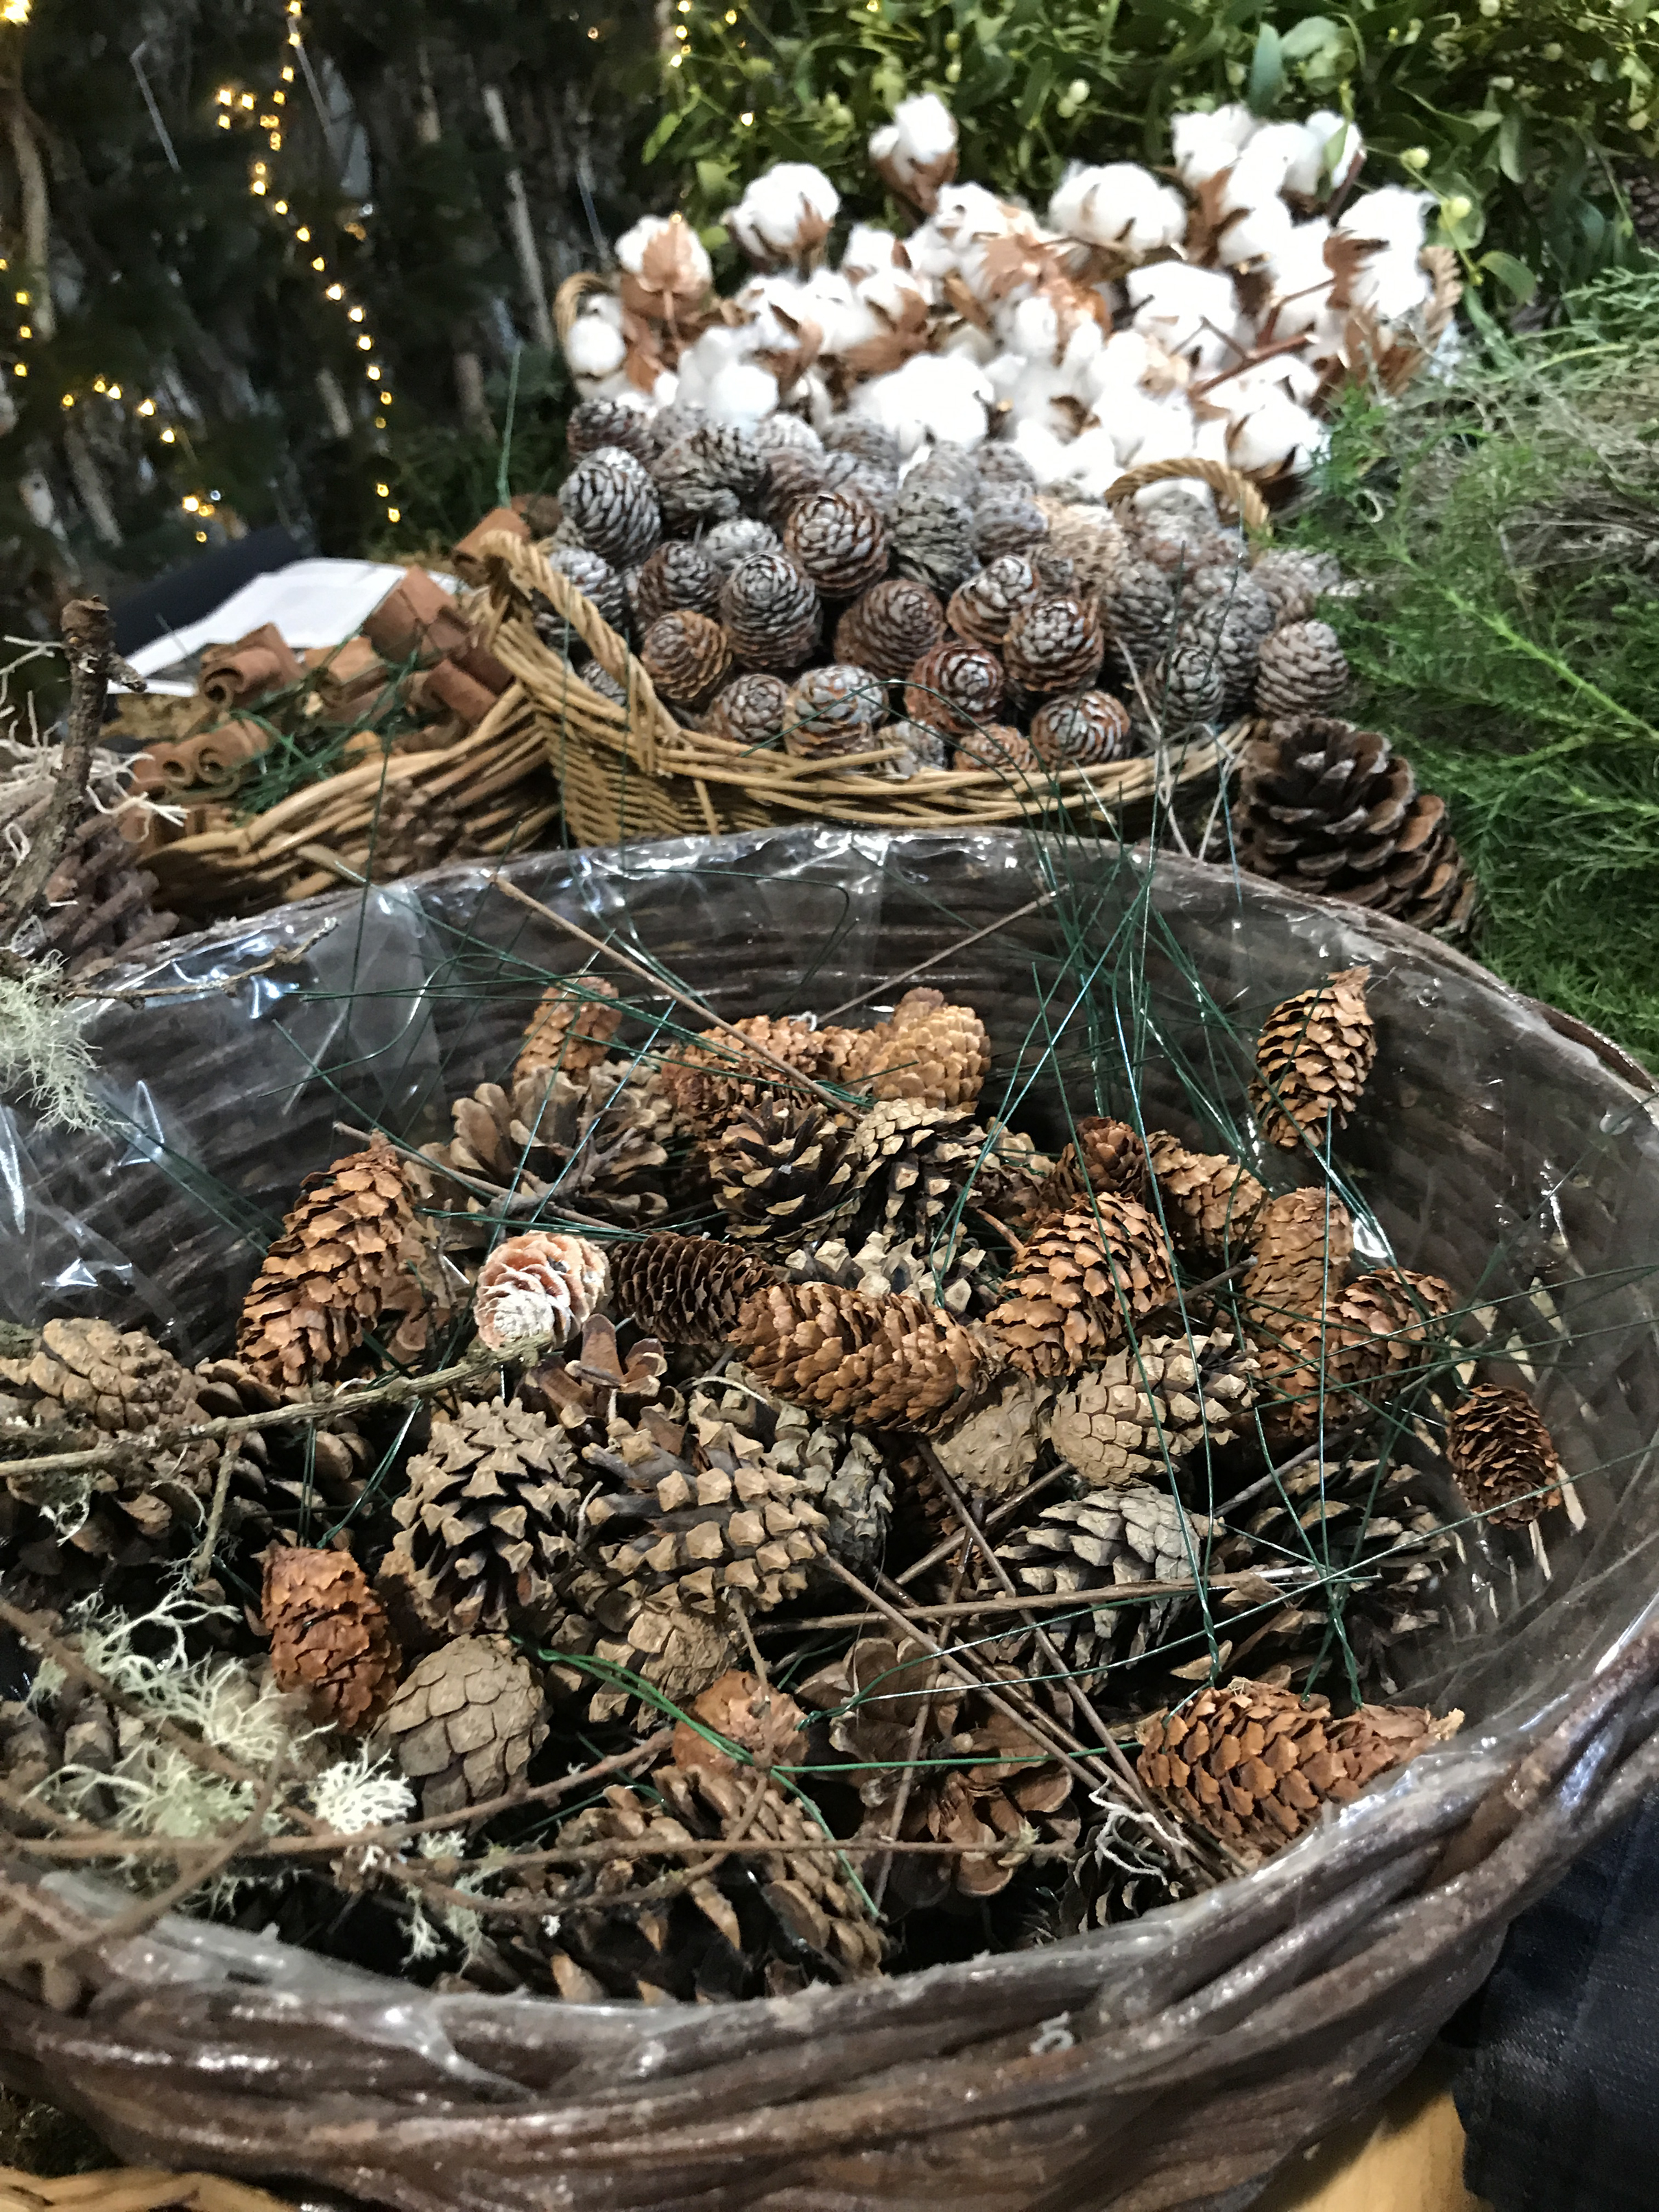 You may have to buy extra pine cones to fill the gaps (Hannah Stephenson/PA)